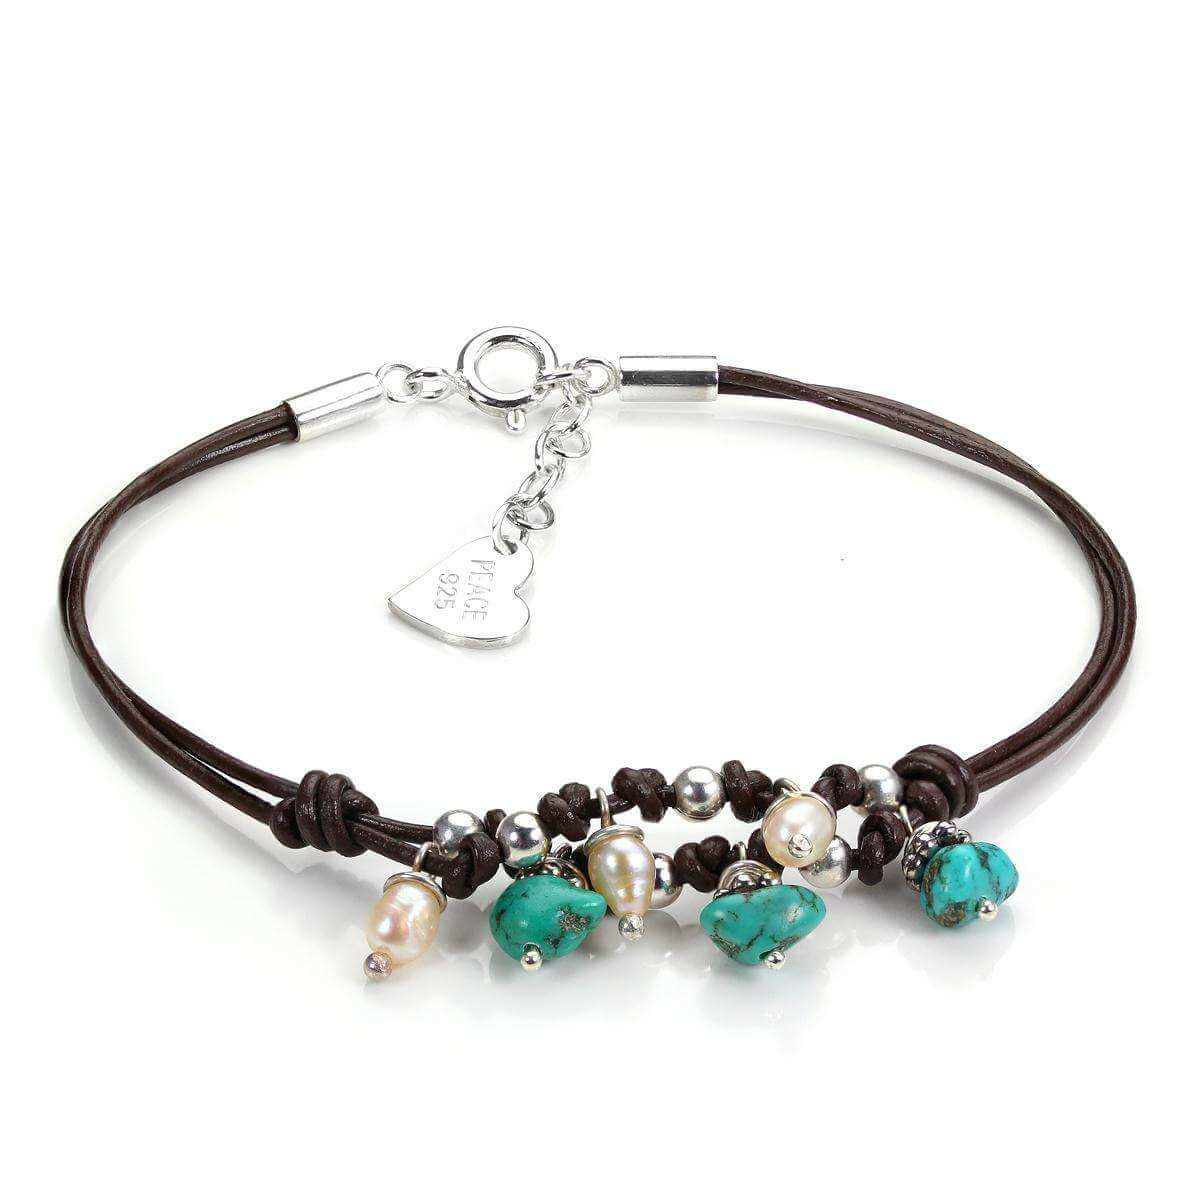 Brown Leather Bracelet with Sterling Silver Turquoise and Pearl Beads